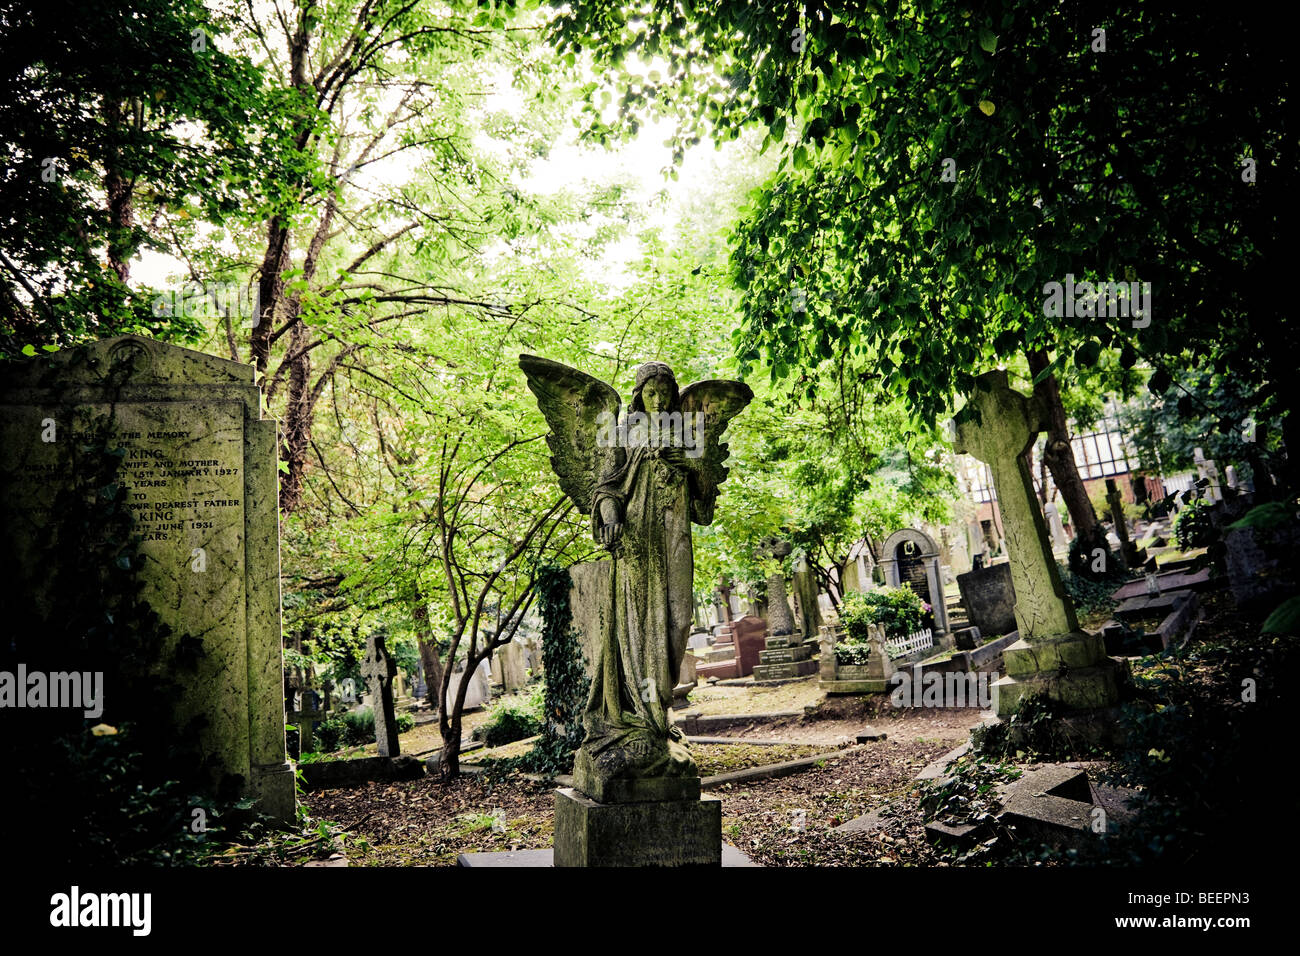 A Stone angel sculptured headstone stands over a grave amongst trees in Highgate Cemetery North London England UK - Stock Image